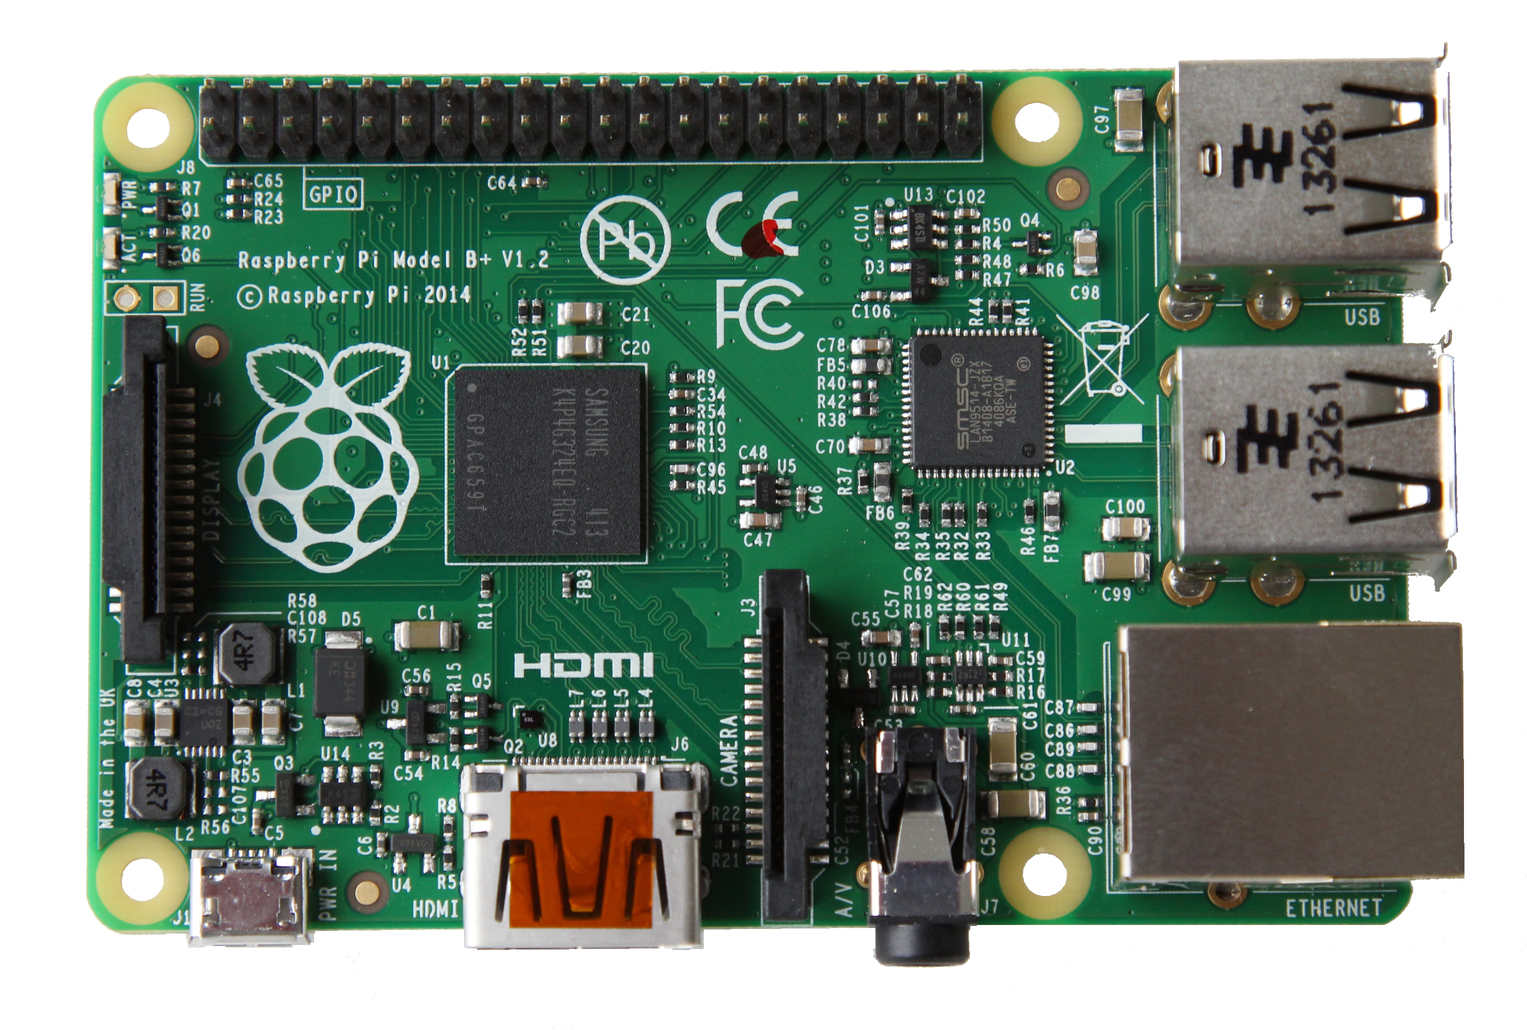 Introducing Raspberry Pi Model B+ - Raspberry Pi